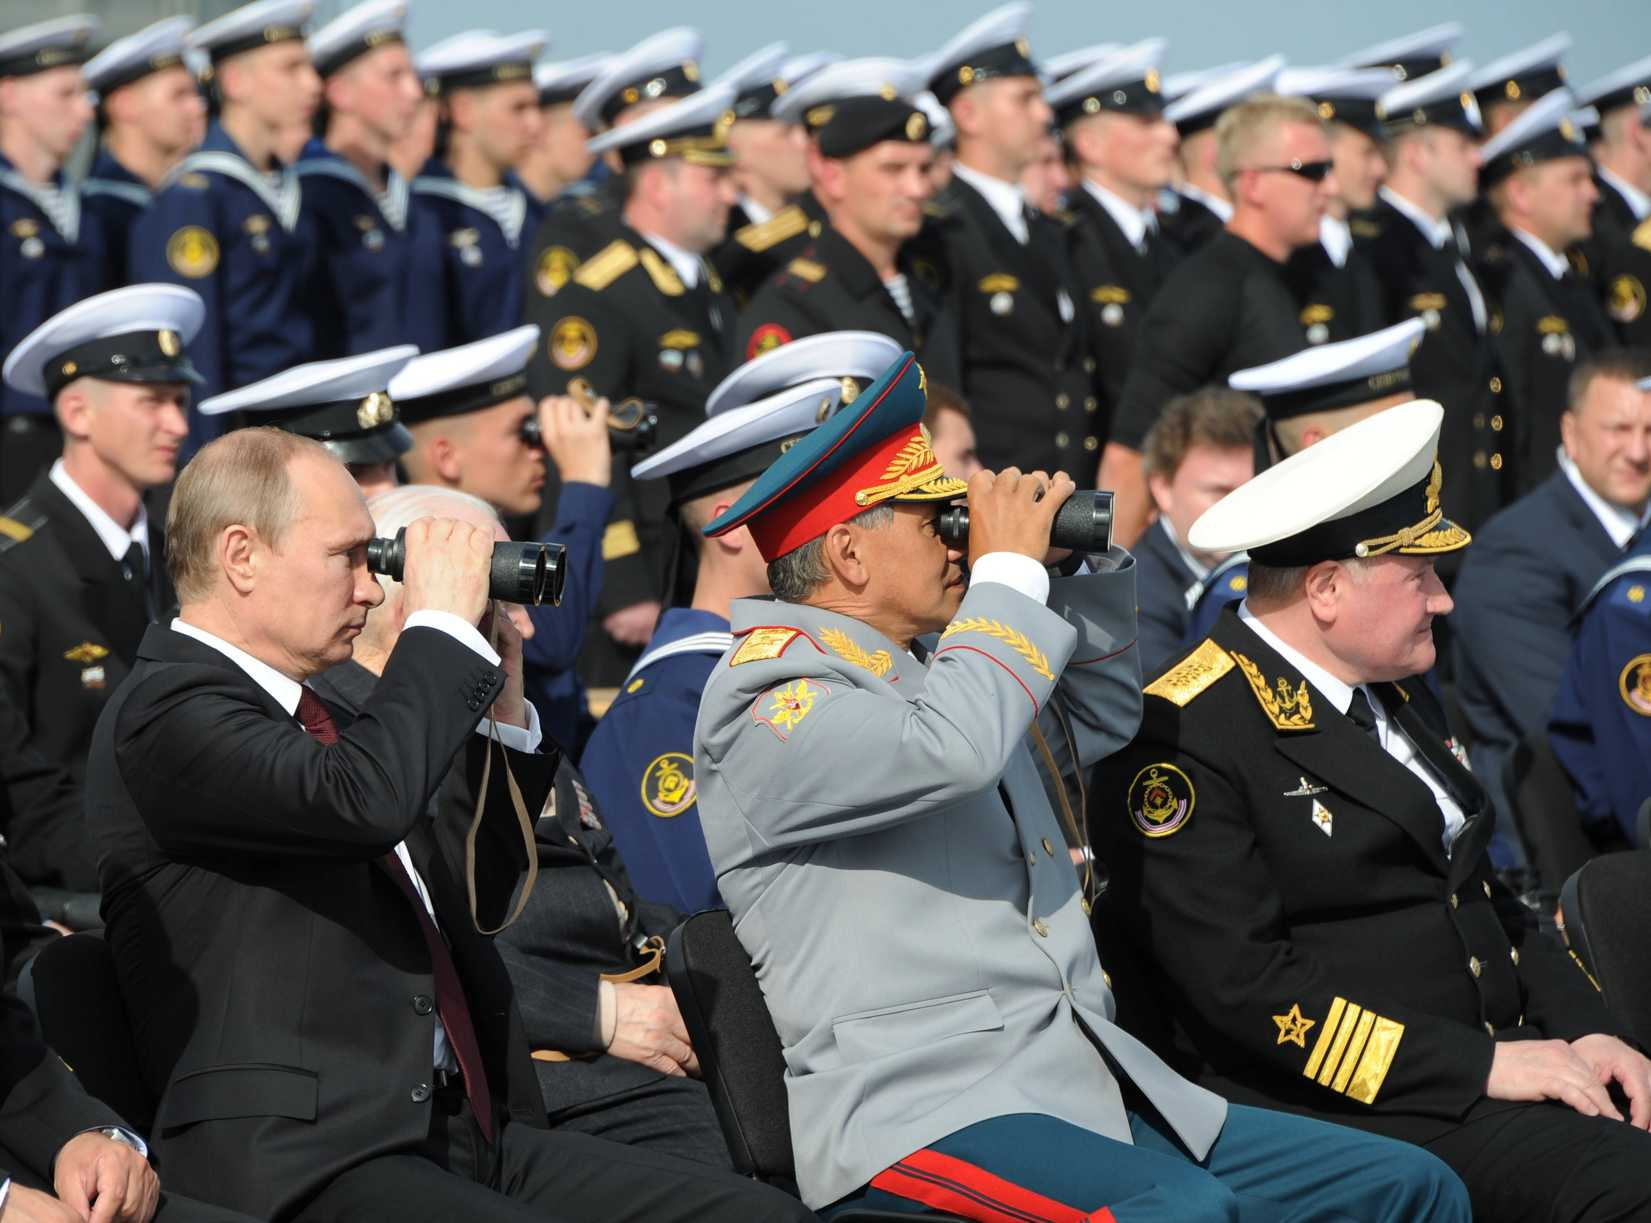 Russian President Vladimir Putin, left, and Russian Defense Minister Sergei Shoigu, center, use binoculars to watch a parade marking the country's Navy Day in Severomorsk, Russia, In this Sunday, on July 27, 2014